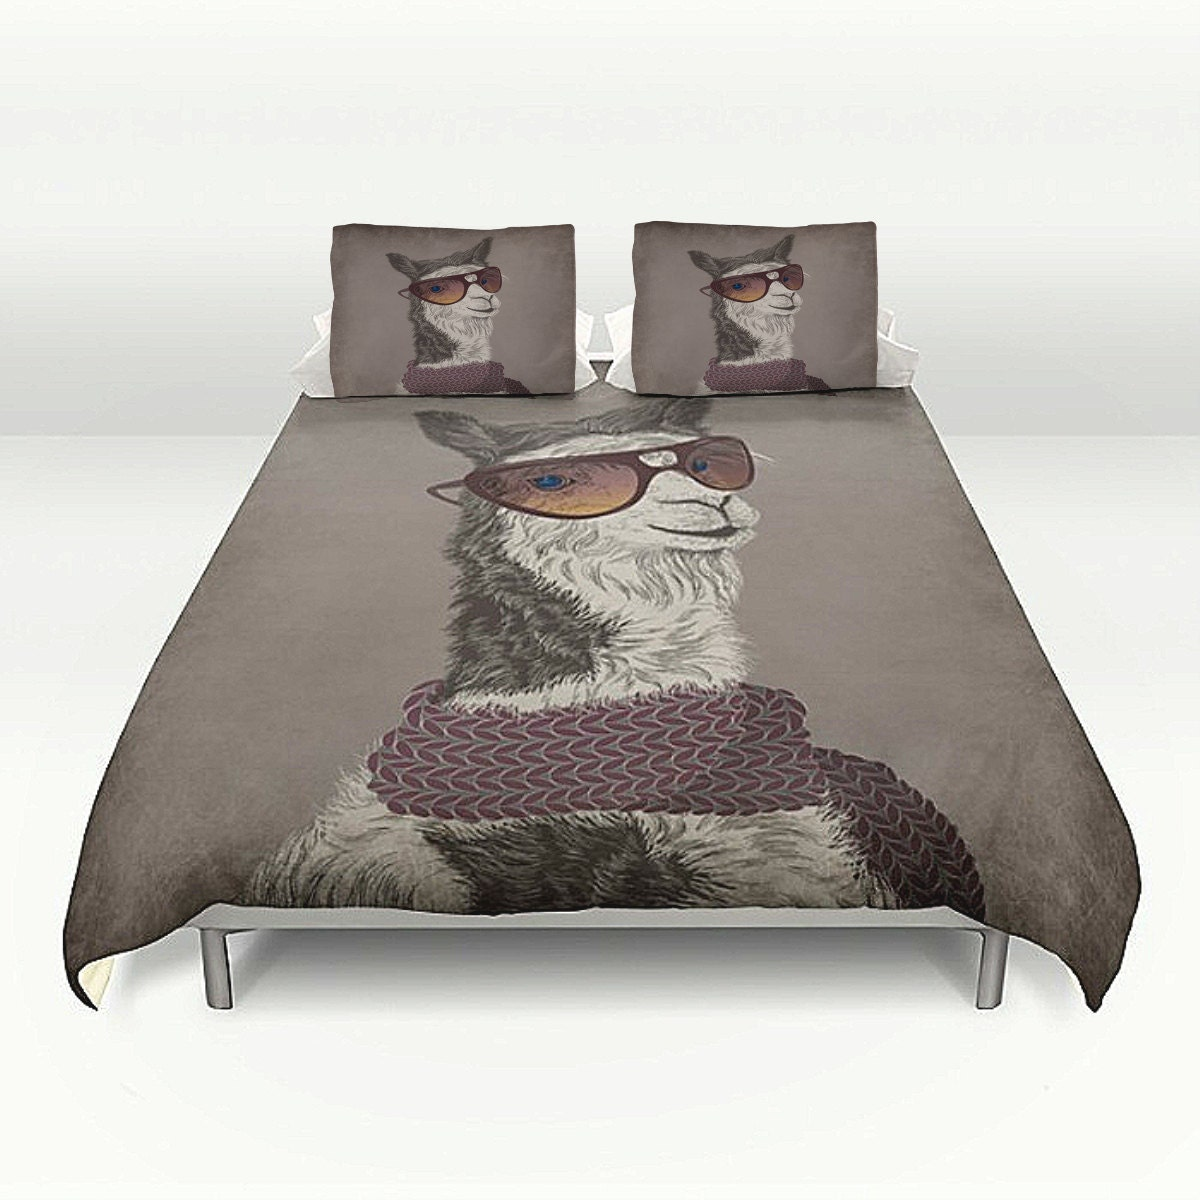 catalogs source bath sets medium size comforter bed kmart bedding duvet hipster and bohemian beyond linen of king covers cuddledown boho classic style